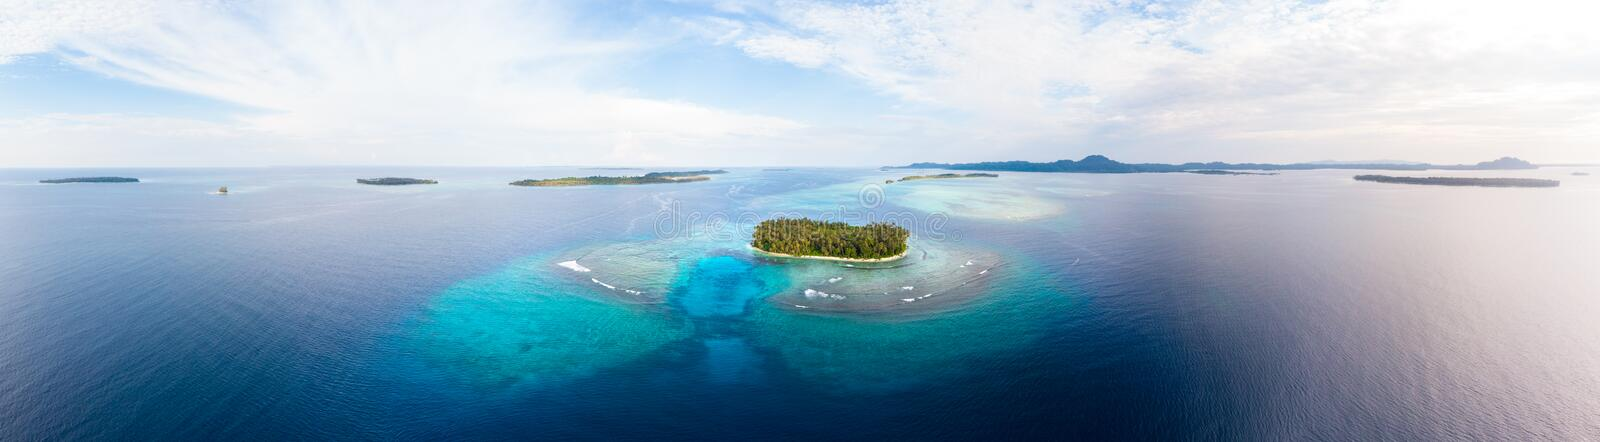 Aerial view Banyak Islands Sumatra tropical archipelago Indonesia, coral reef beach turquoise water. Travel destination, diving stock images